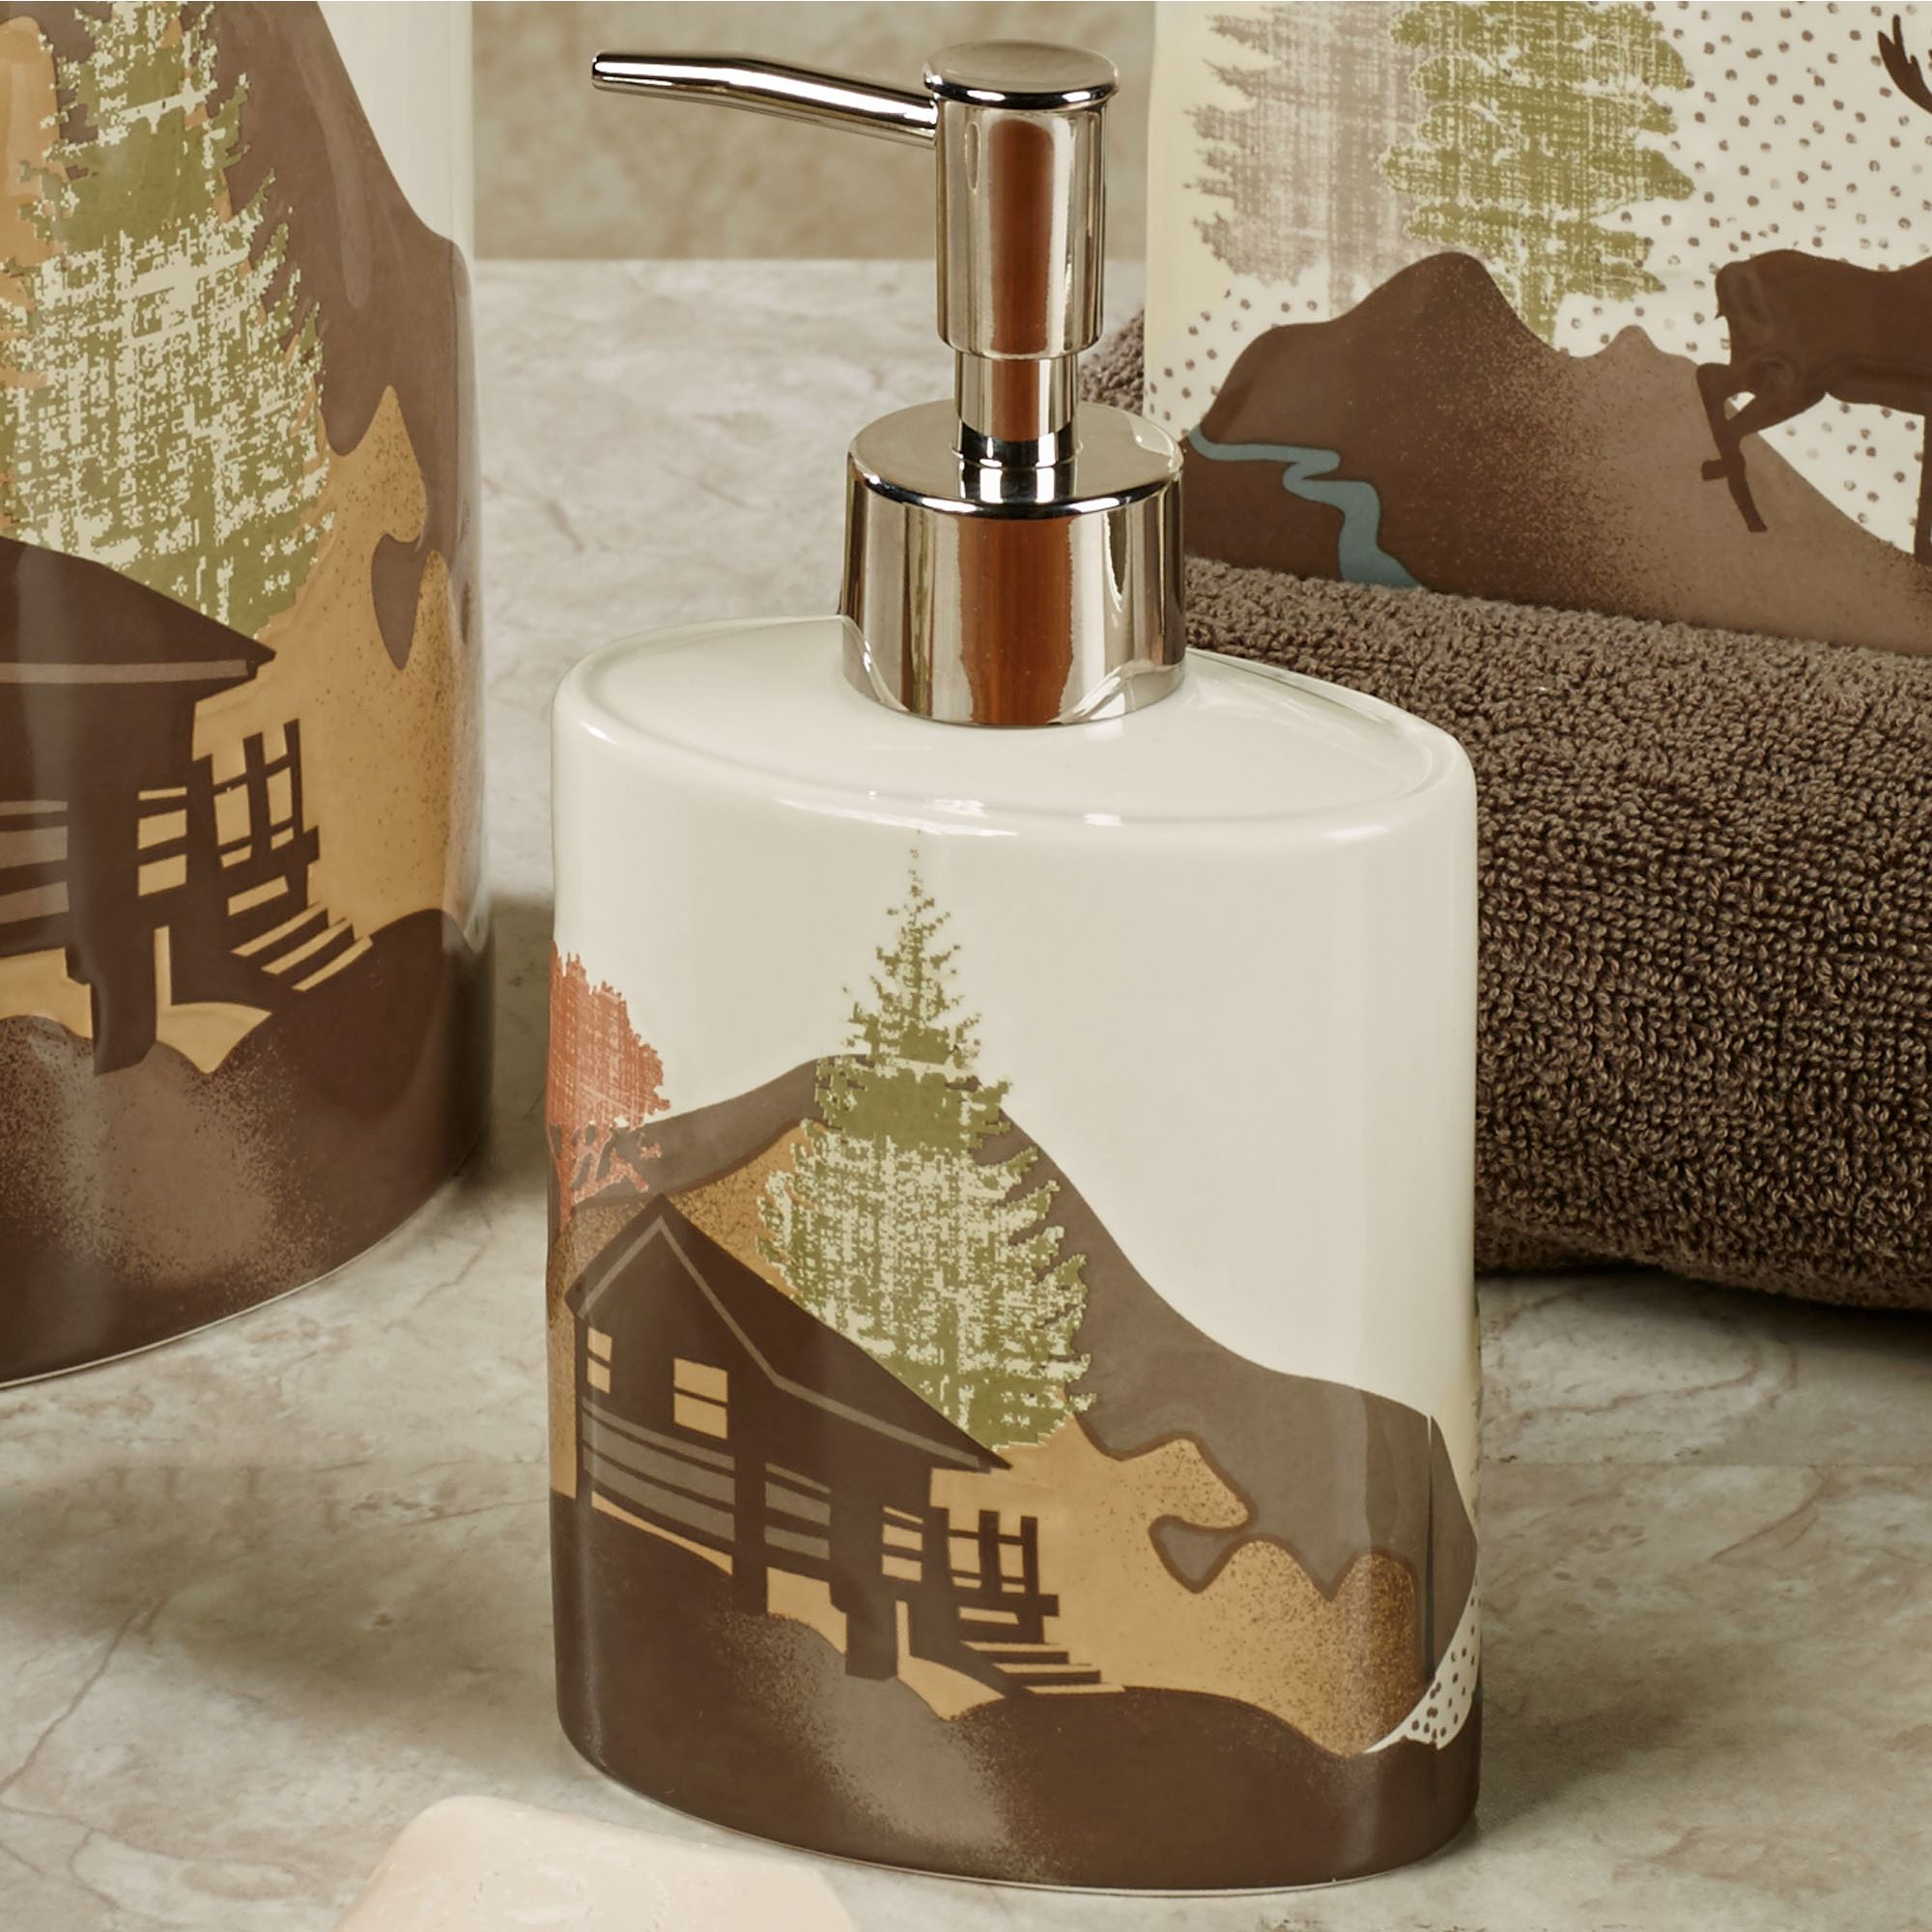 Mountain View Lotion Soap Dispenser Multi Warm